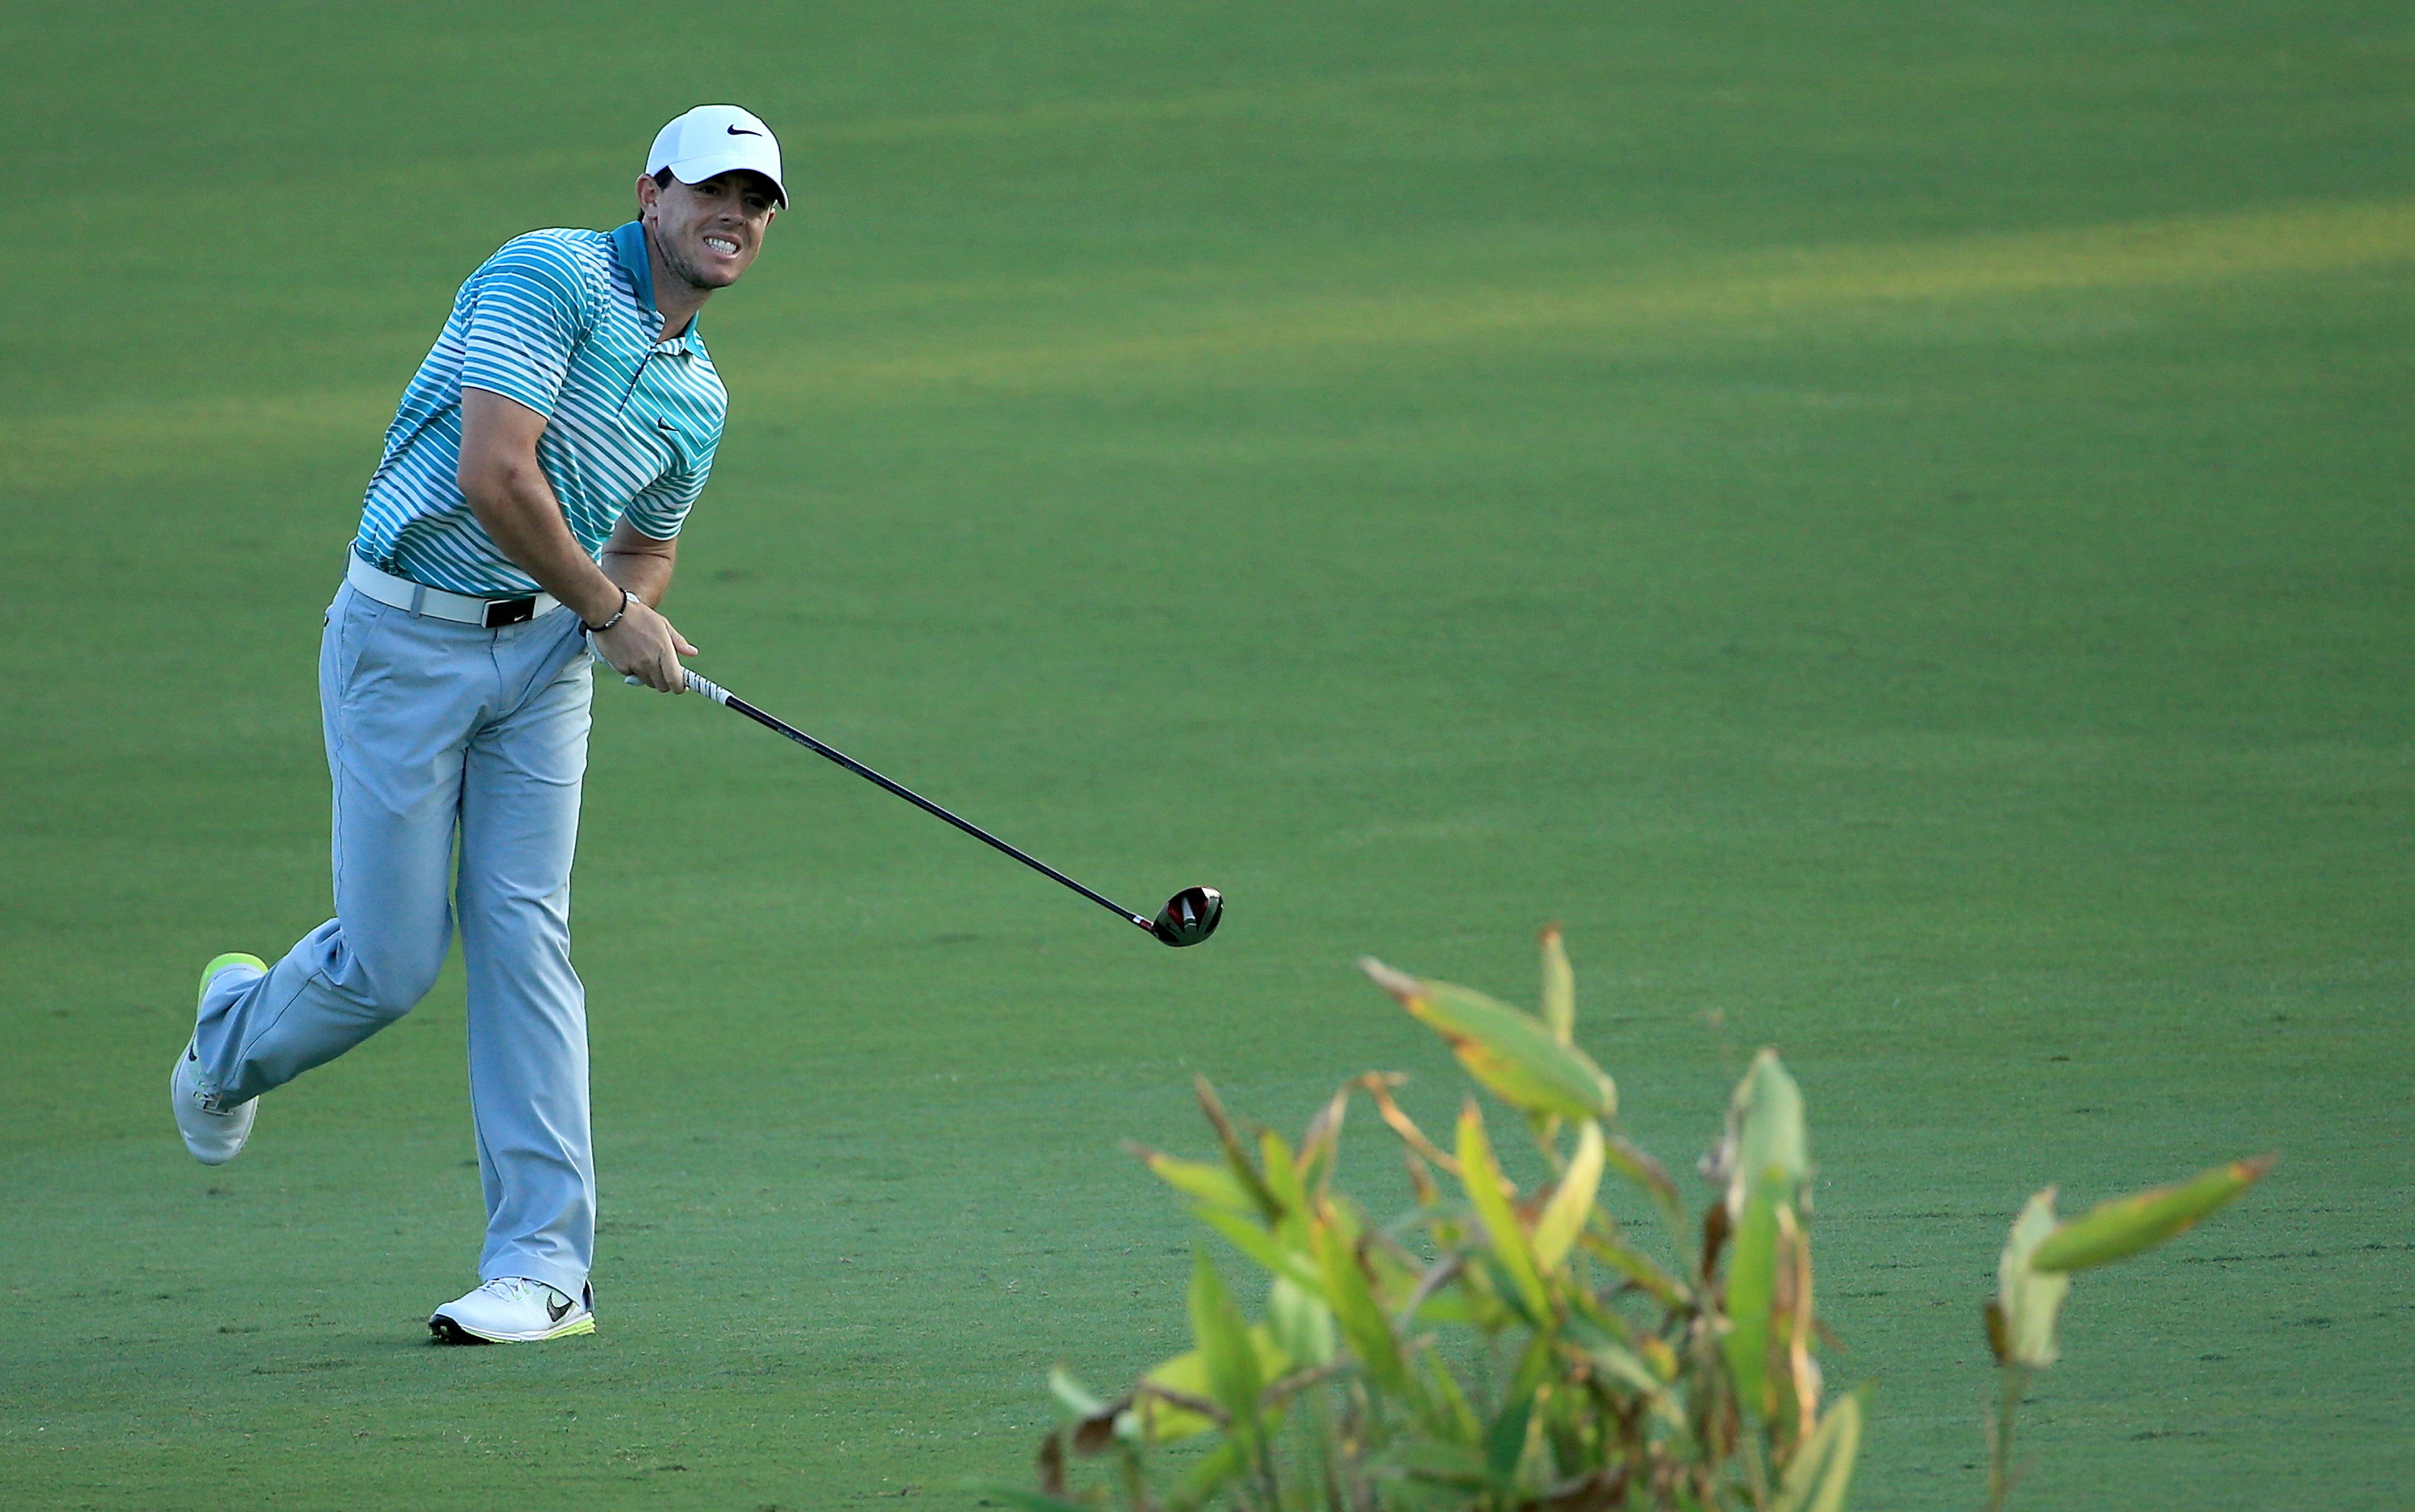 Rory McIlroy during the second round of the 2014 DP World Tour Championship